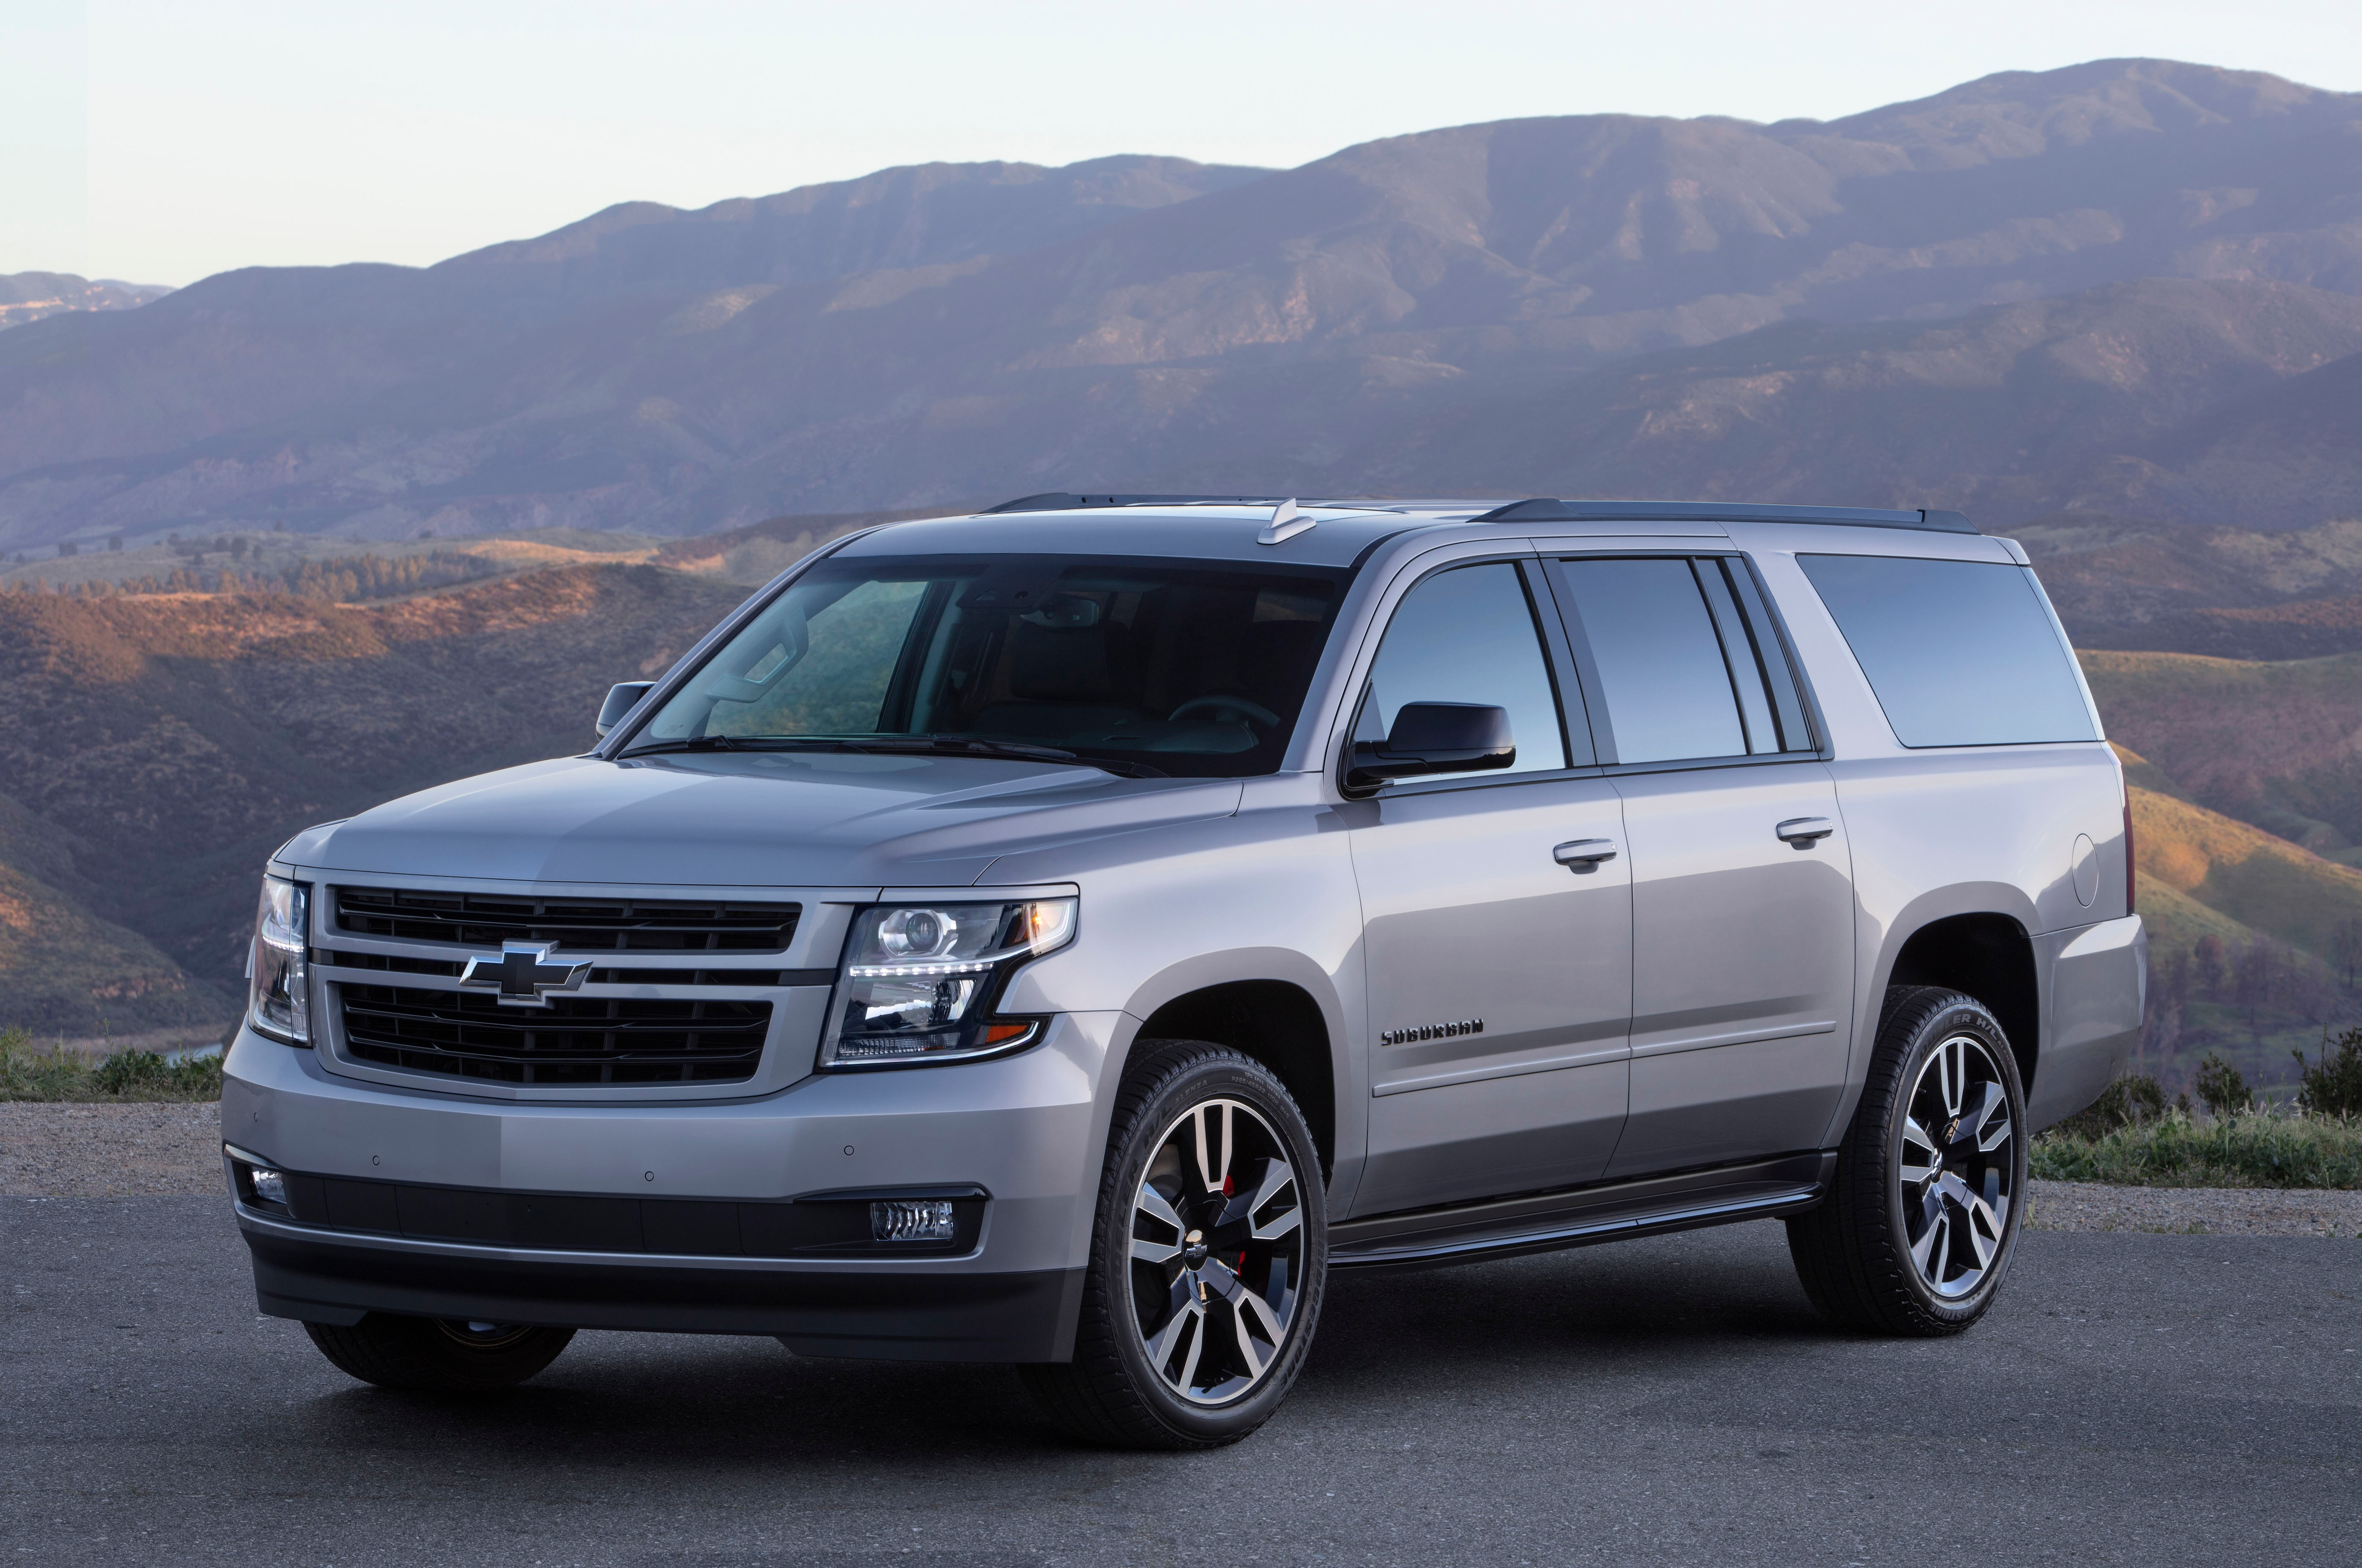 2019 Chevrolet Suburban RST Front Three Quarters